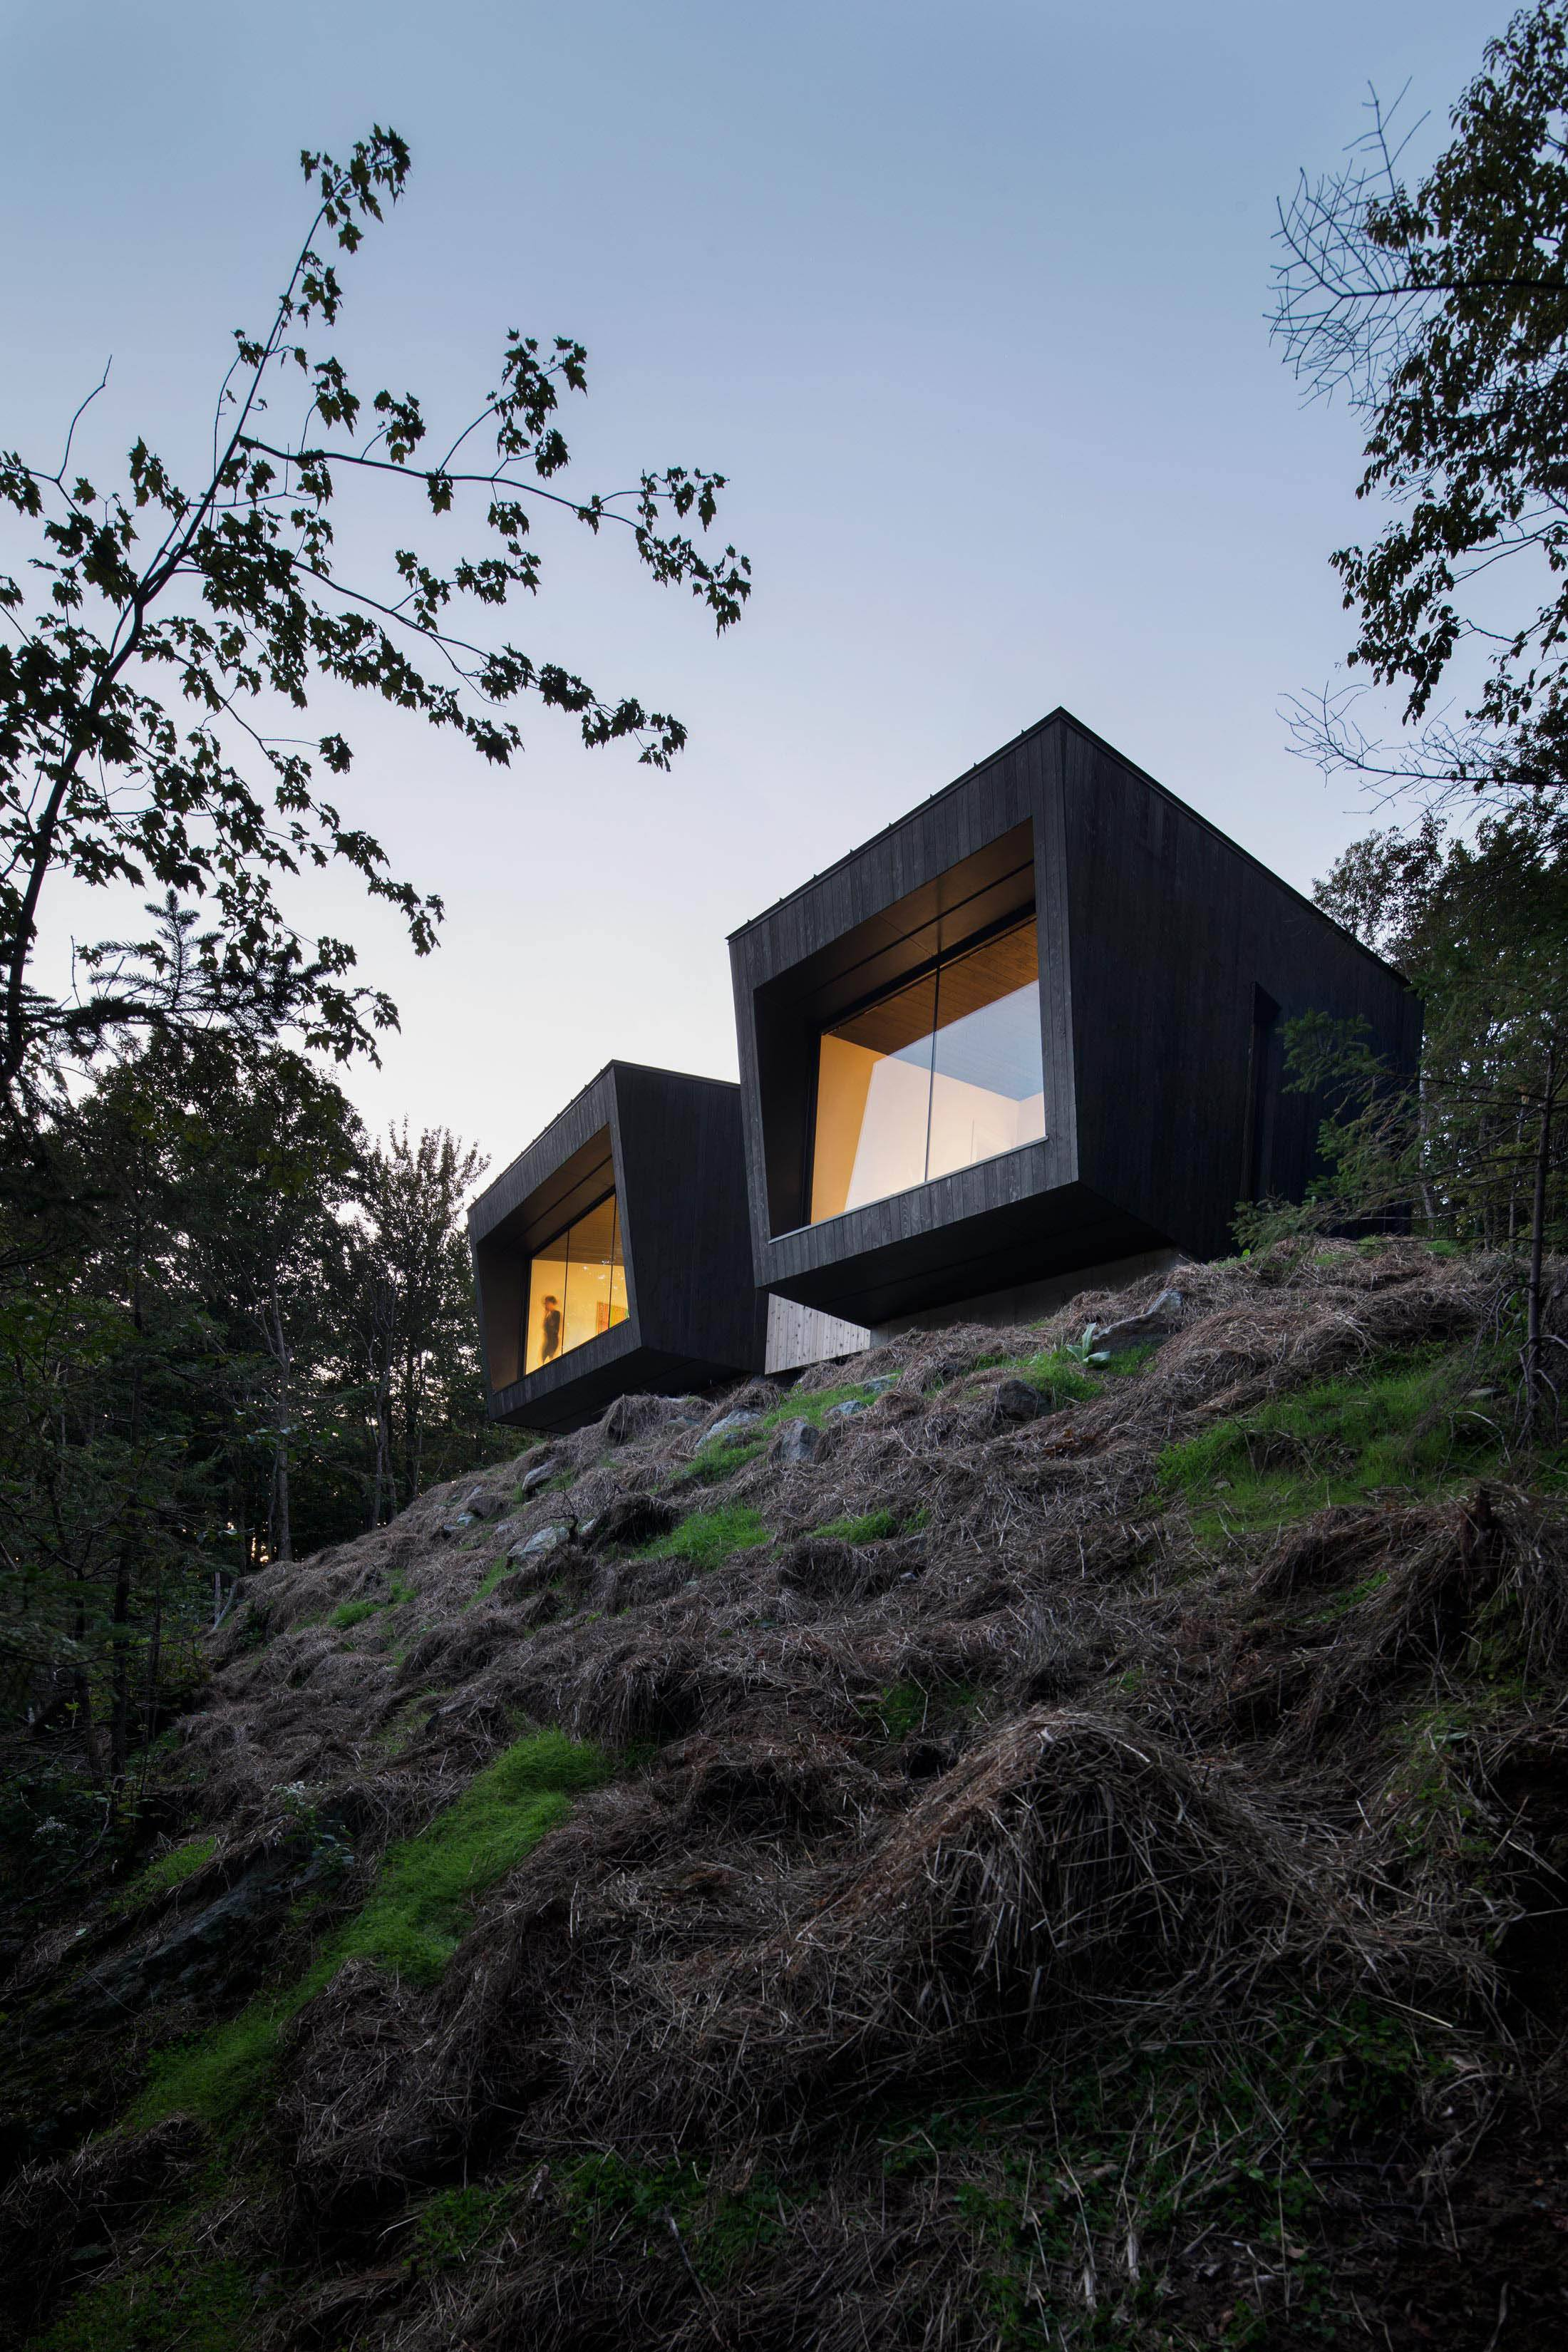 IGNANT-Architecture-Nature-Humaine-La-Bionocle-Cabin-1